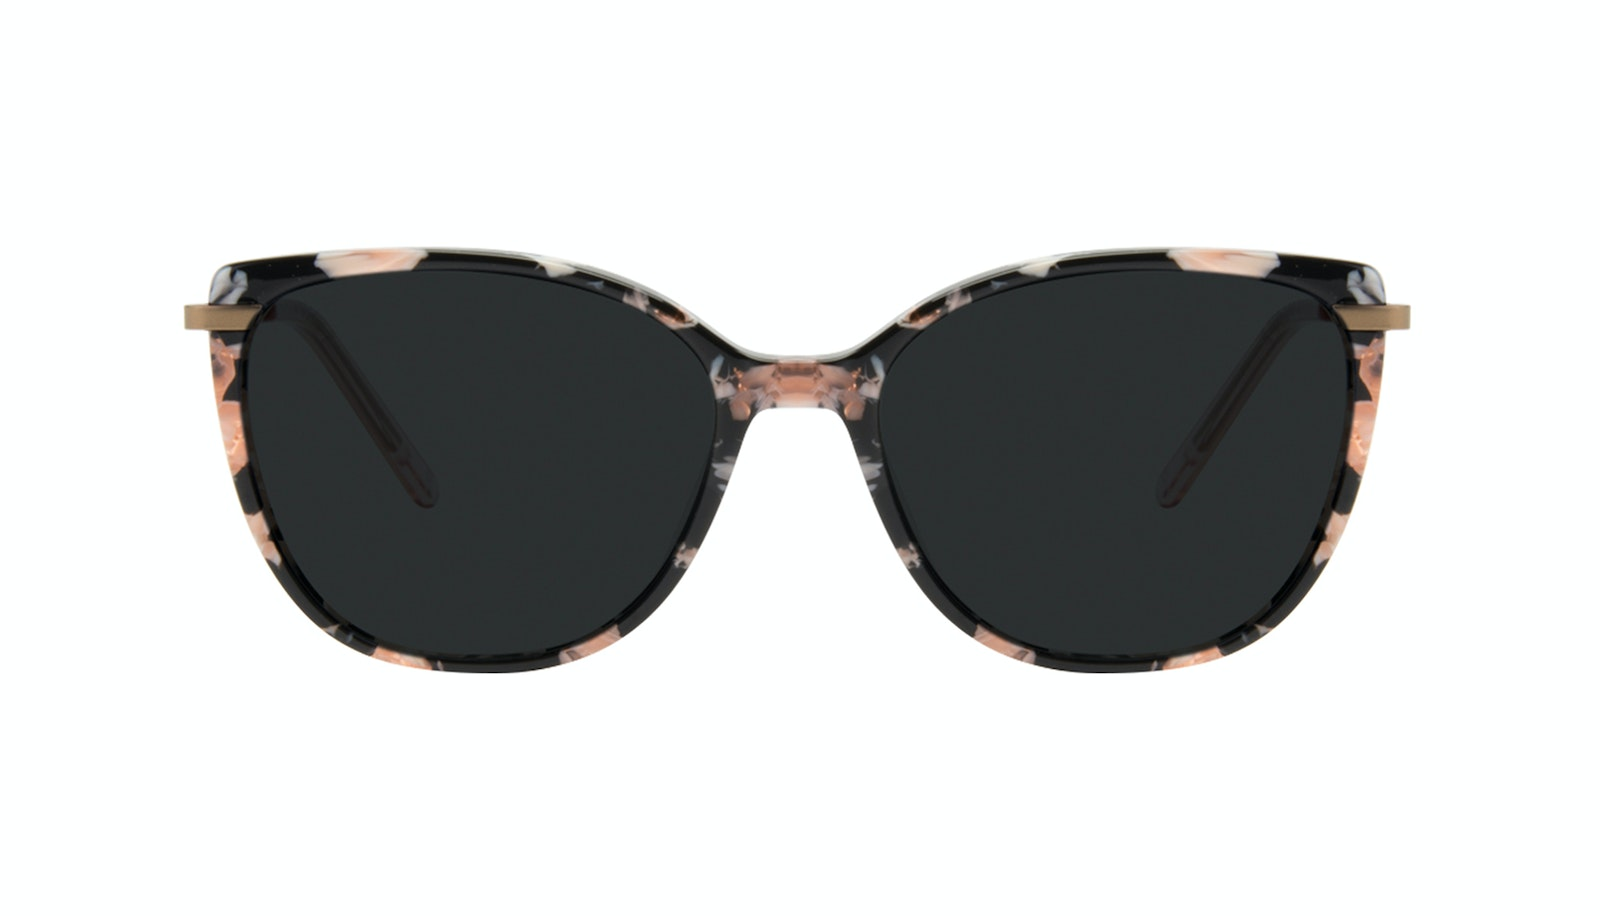 Affordable Fashion Glasses Rectangle Square Sunglasses Women Illusion Licorice